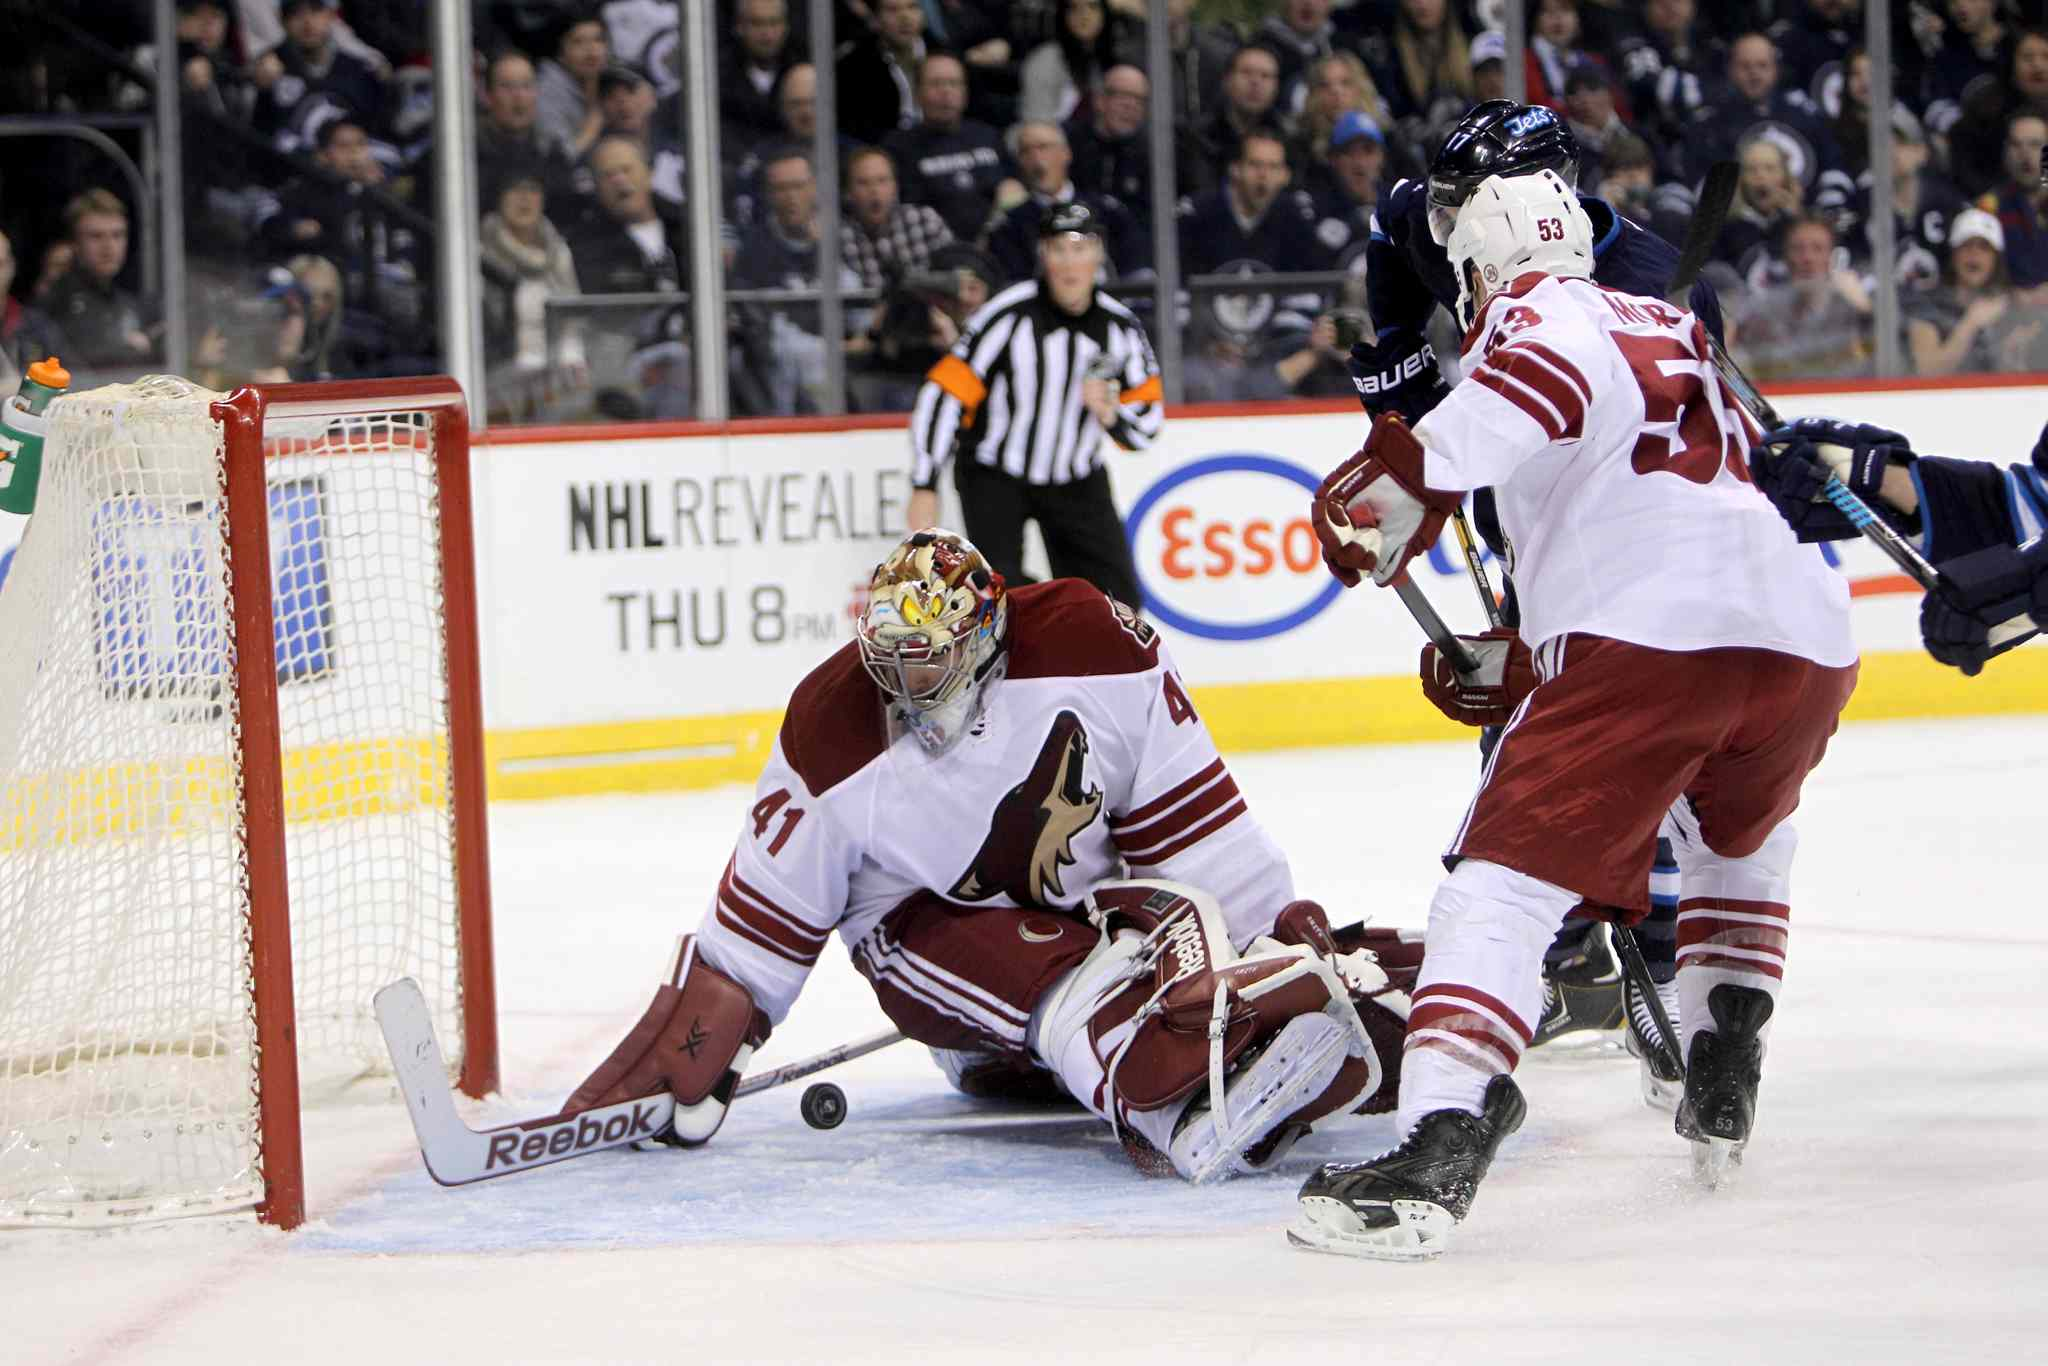 Phoenix Coyotes' goalie Mike Smith (41) manages to grab the puck before it goes into the net during the second period of  NHL action in Winnipeg Thursday night.